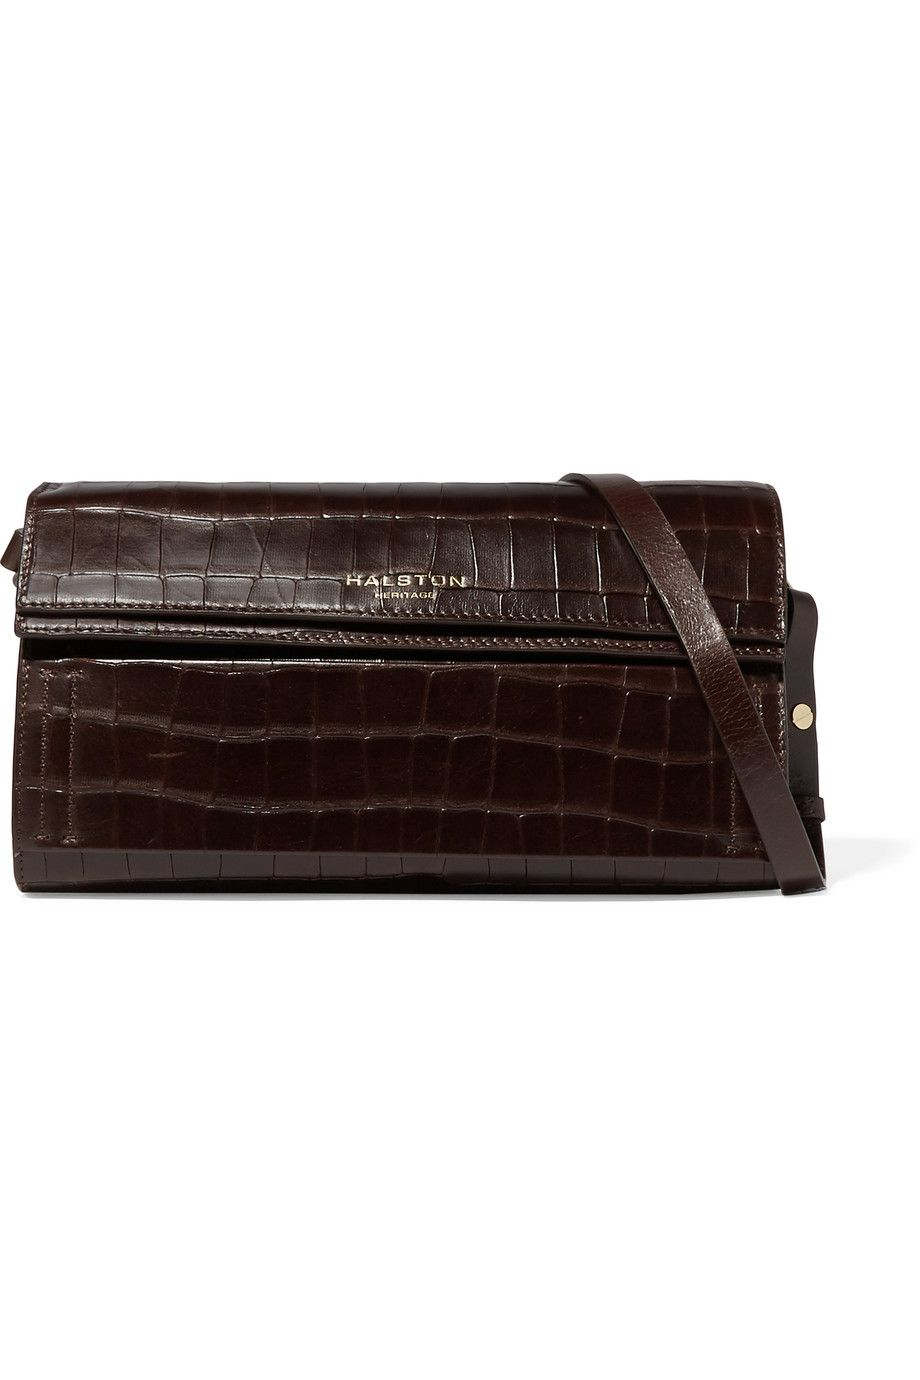 1366f62775e HALSTON HERITAGE Croc-Effect Leather Shoulder Bag.  halstonheritage  bags  shoulder  bags  leather